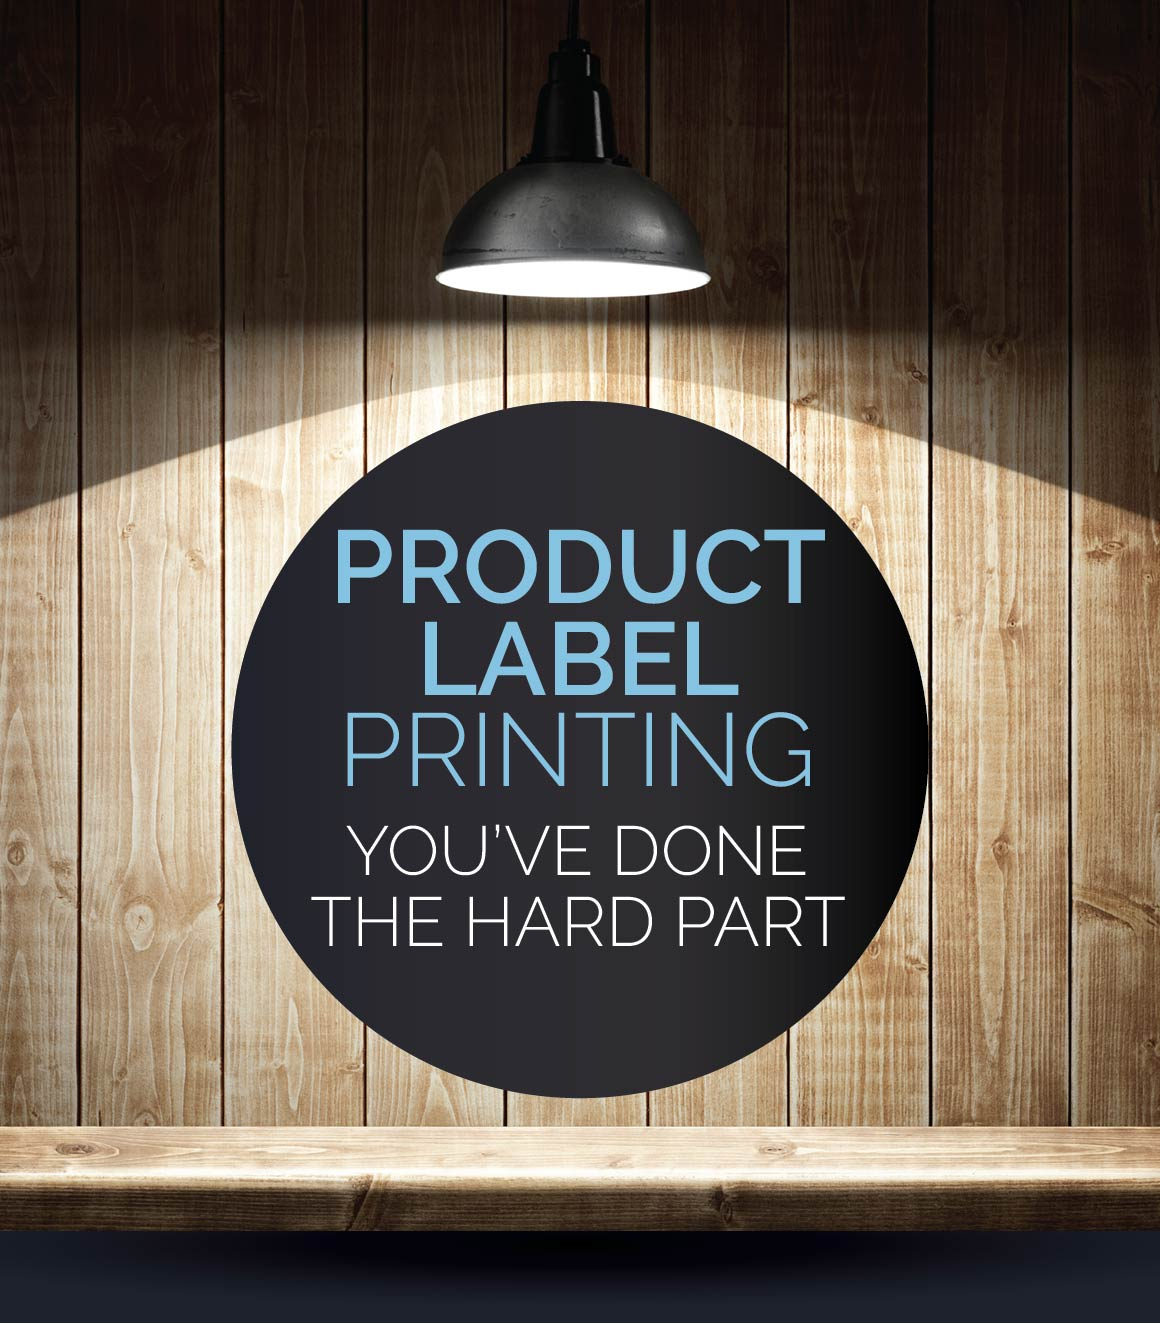 Product Label Printing for small business.